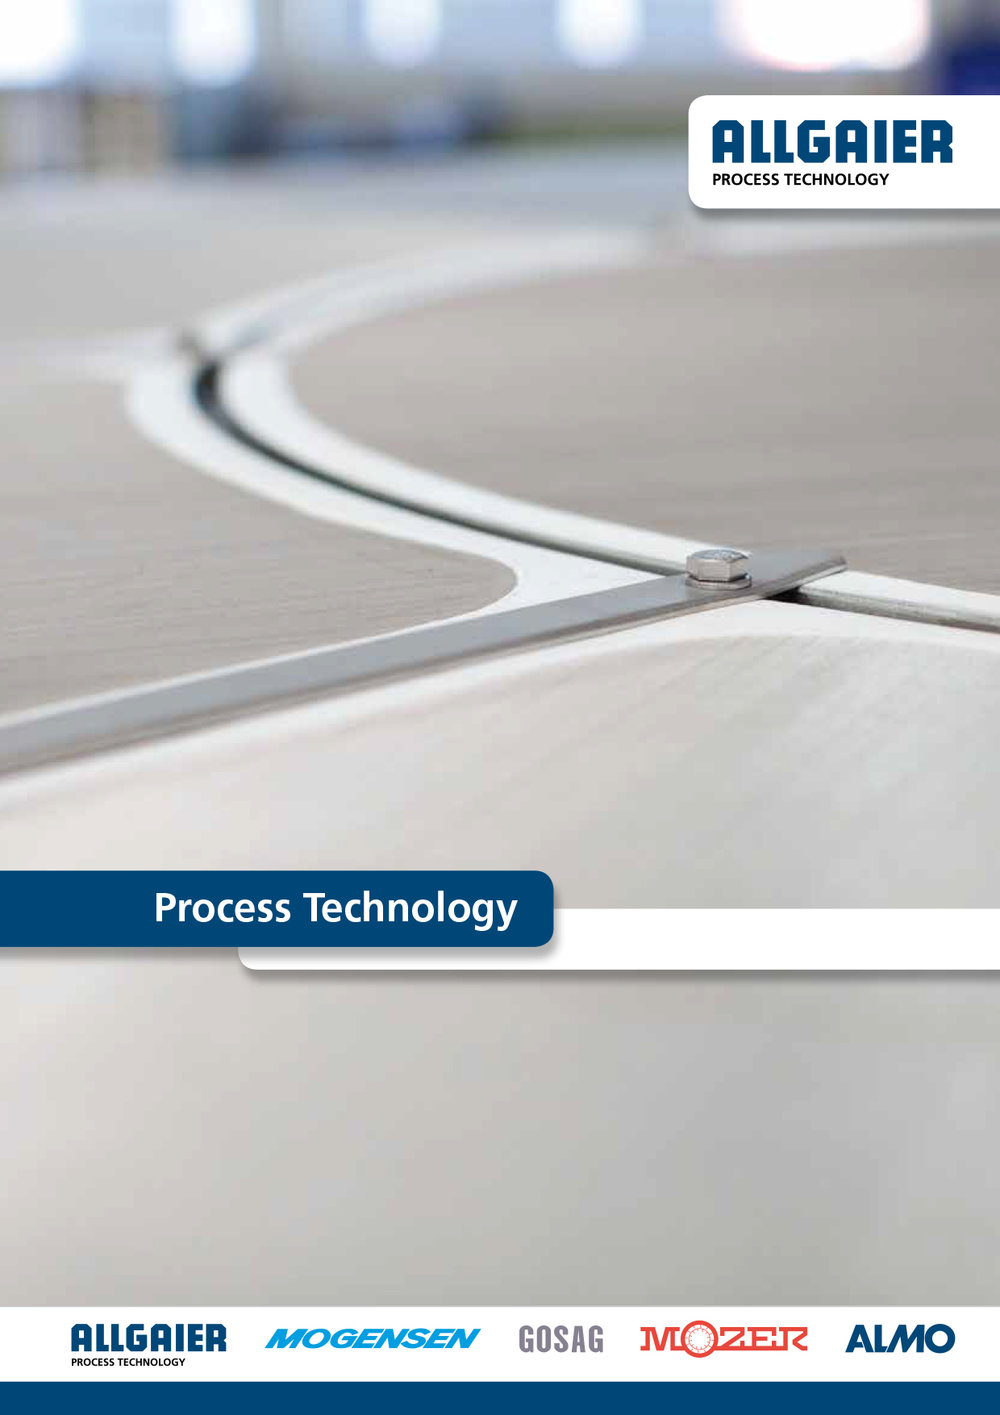 Allgaier Process Technology